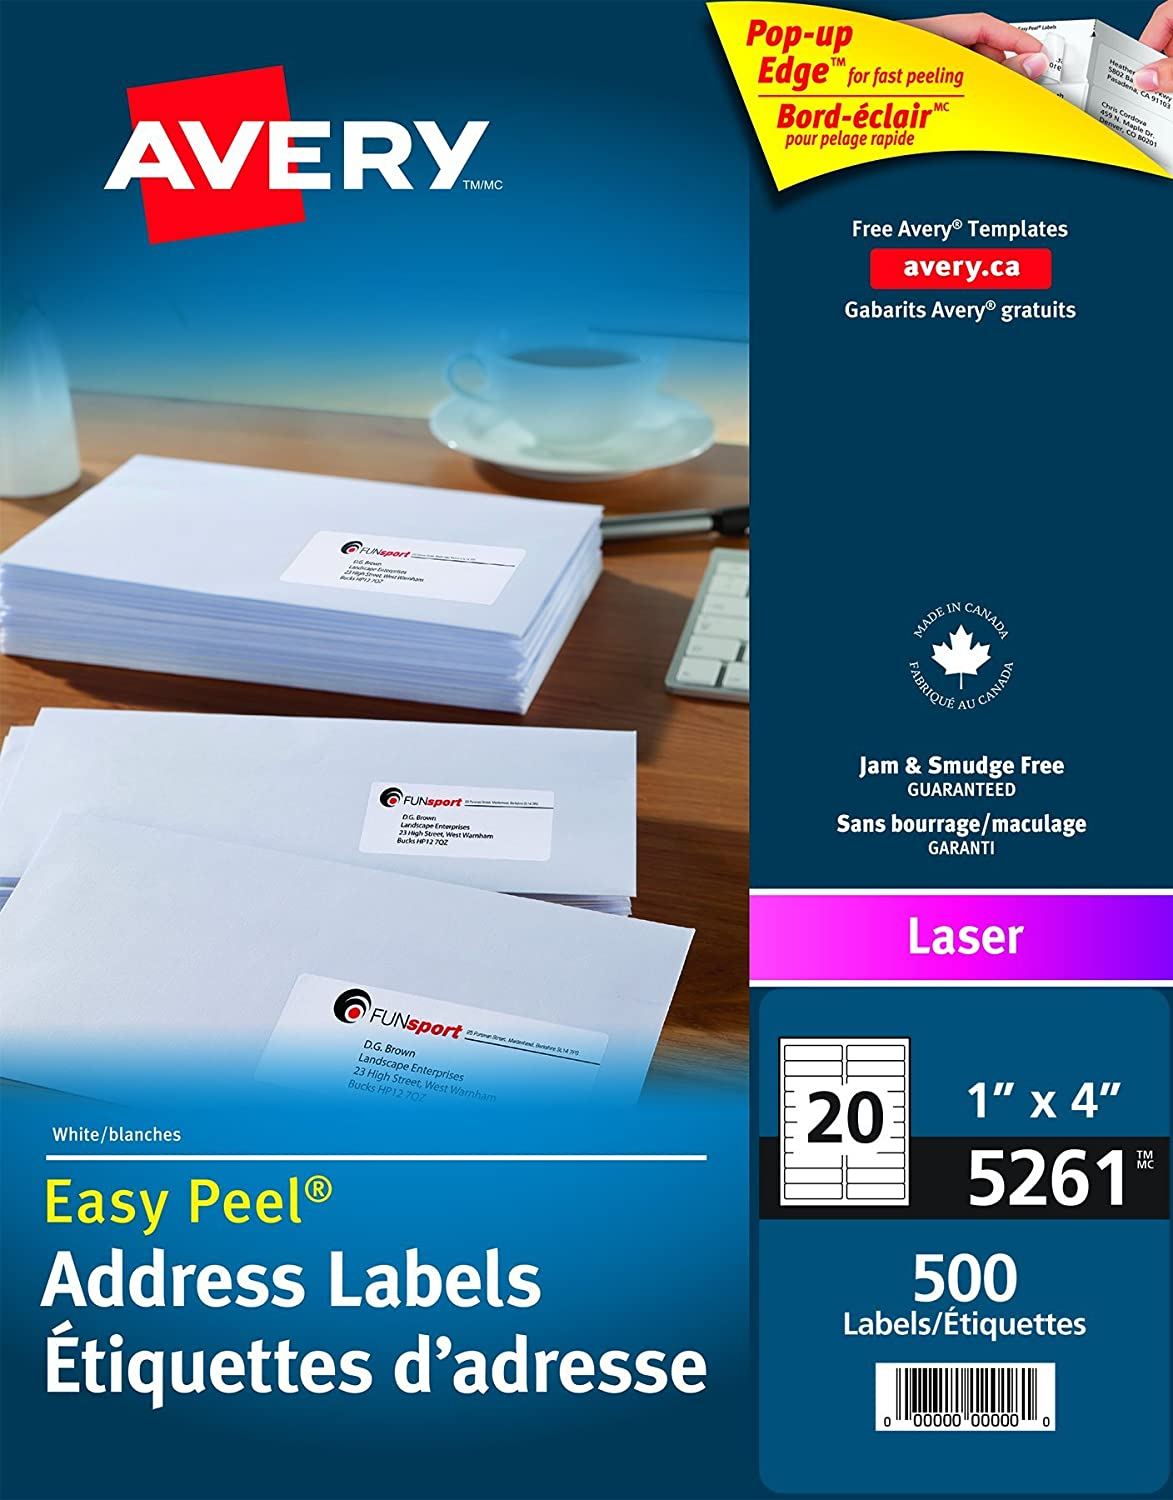 Avery Address Labels With Easy Peel For Laser Printers 1 X 4